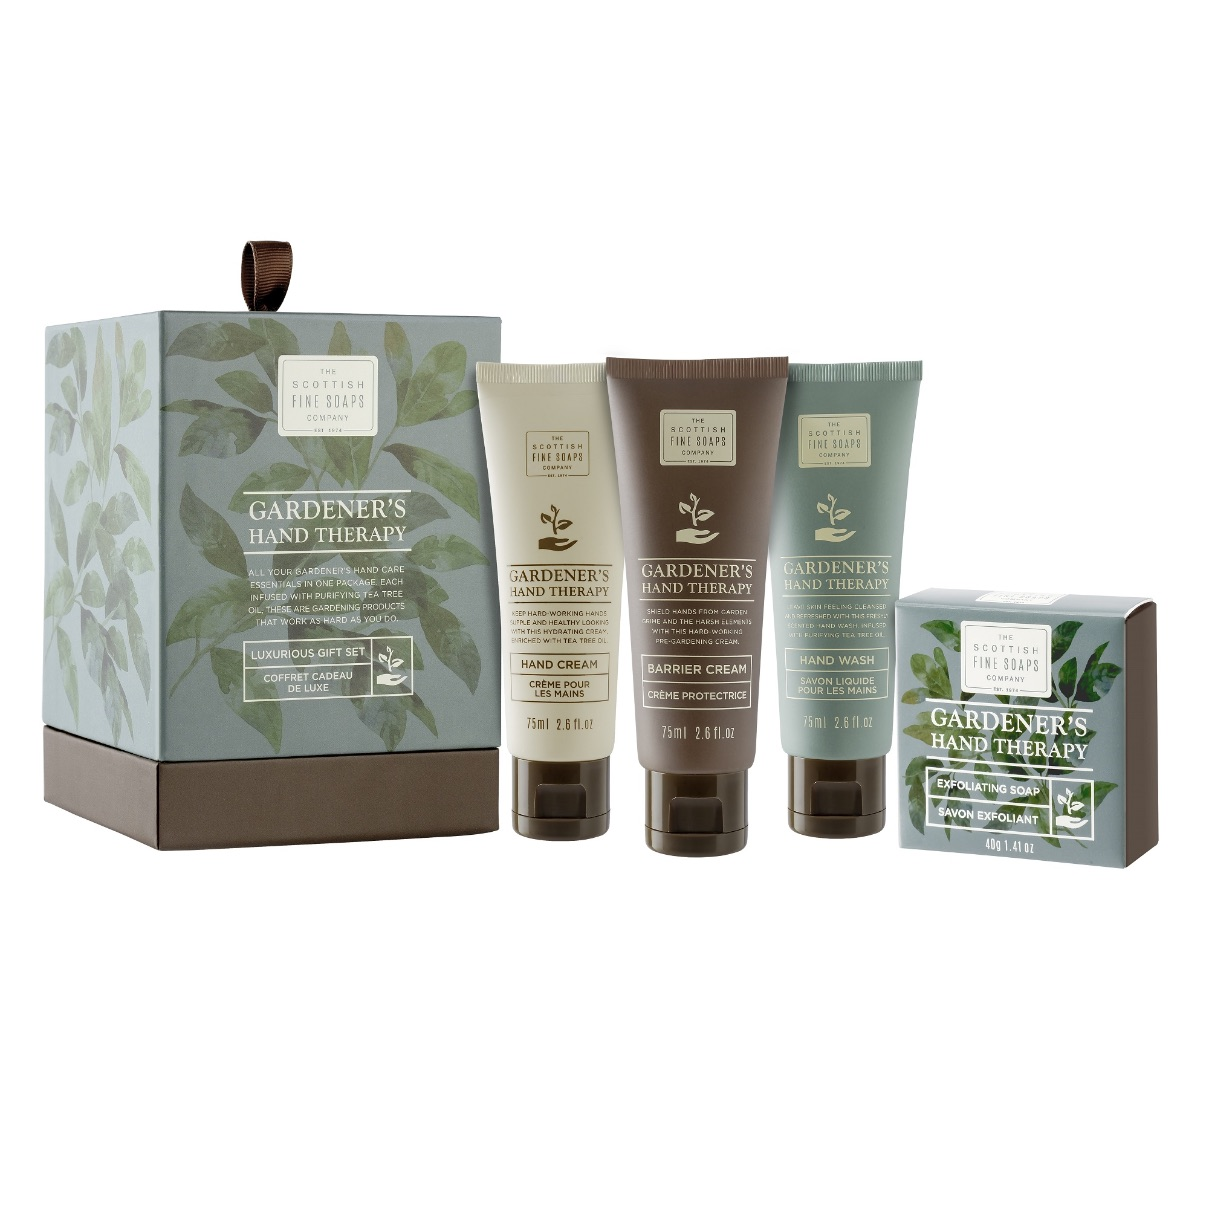 Scottish Fine Soaps Gardeners Therapy Luxury Gift Set